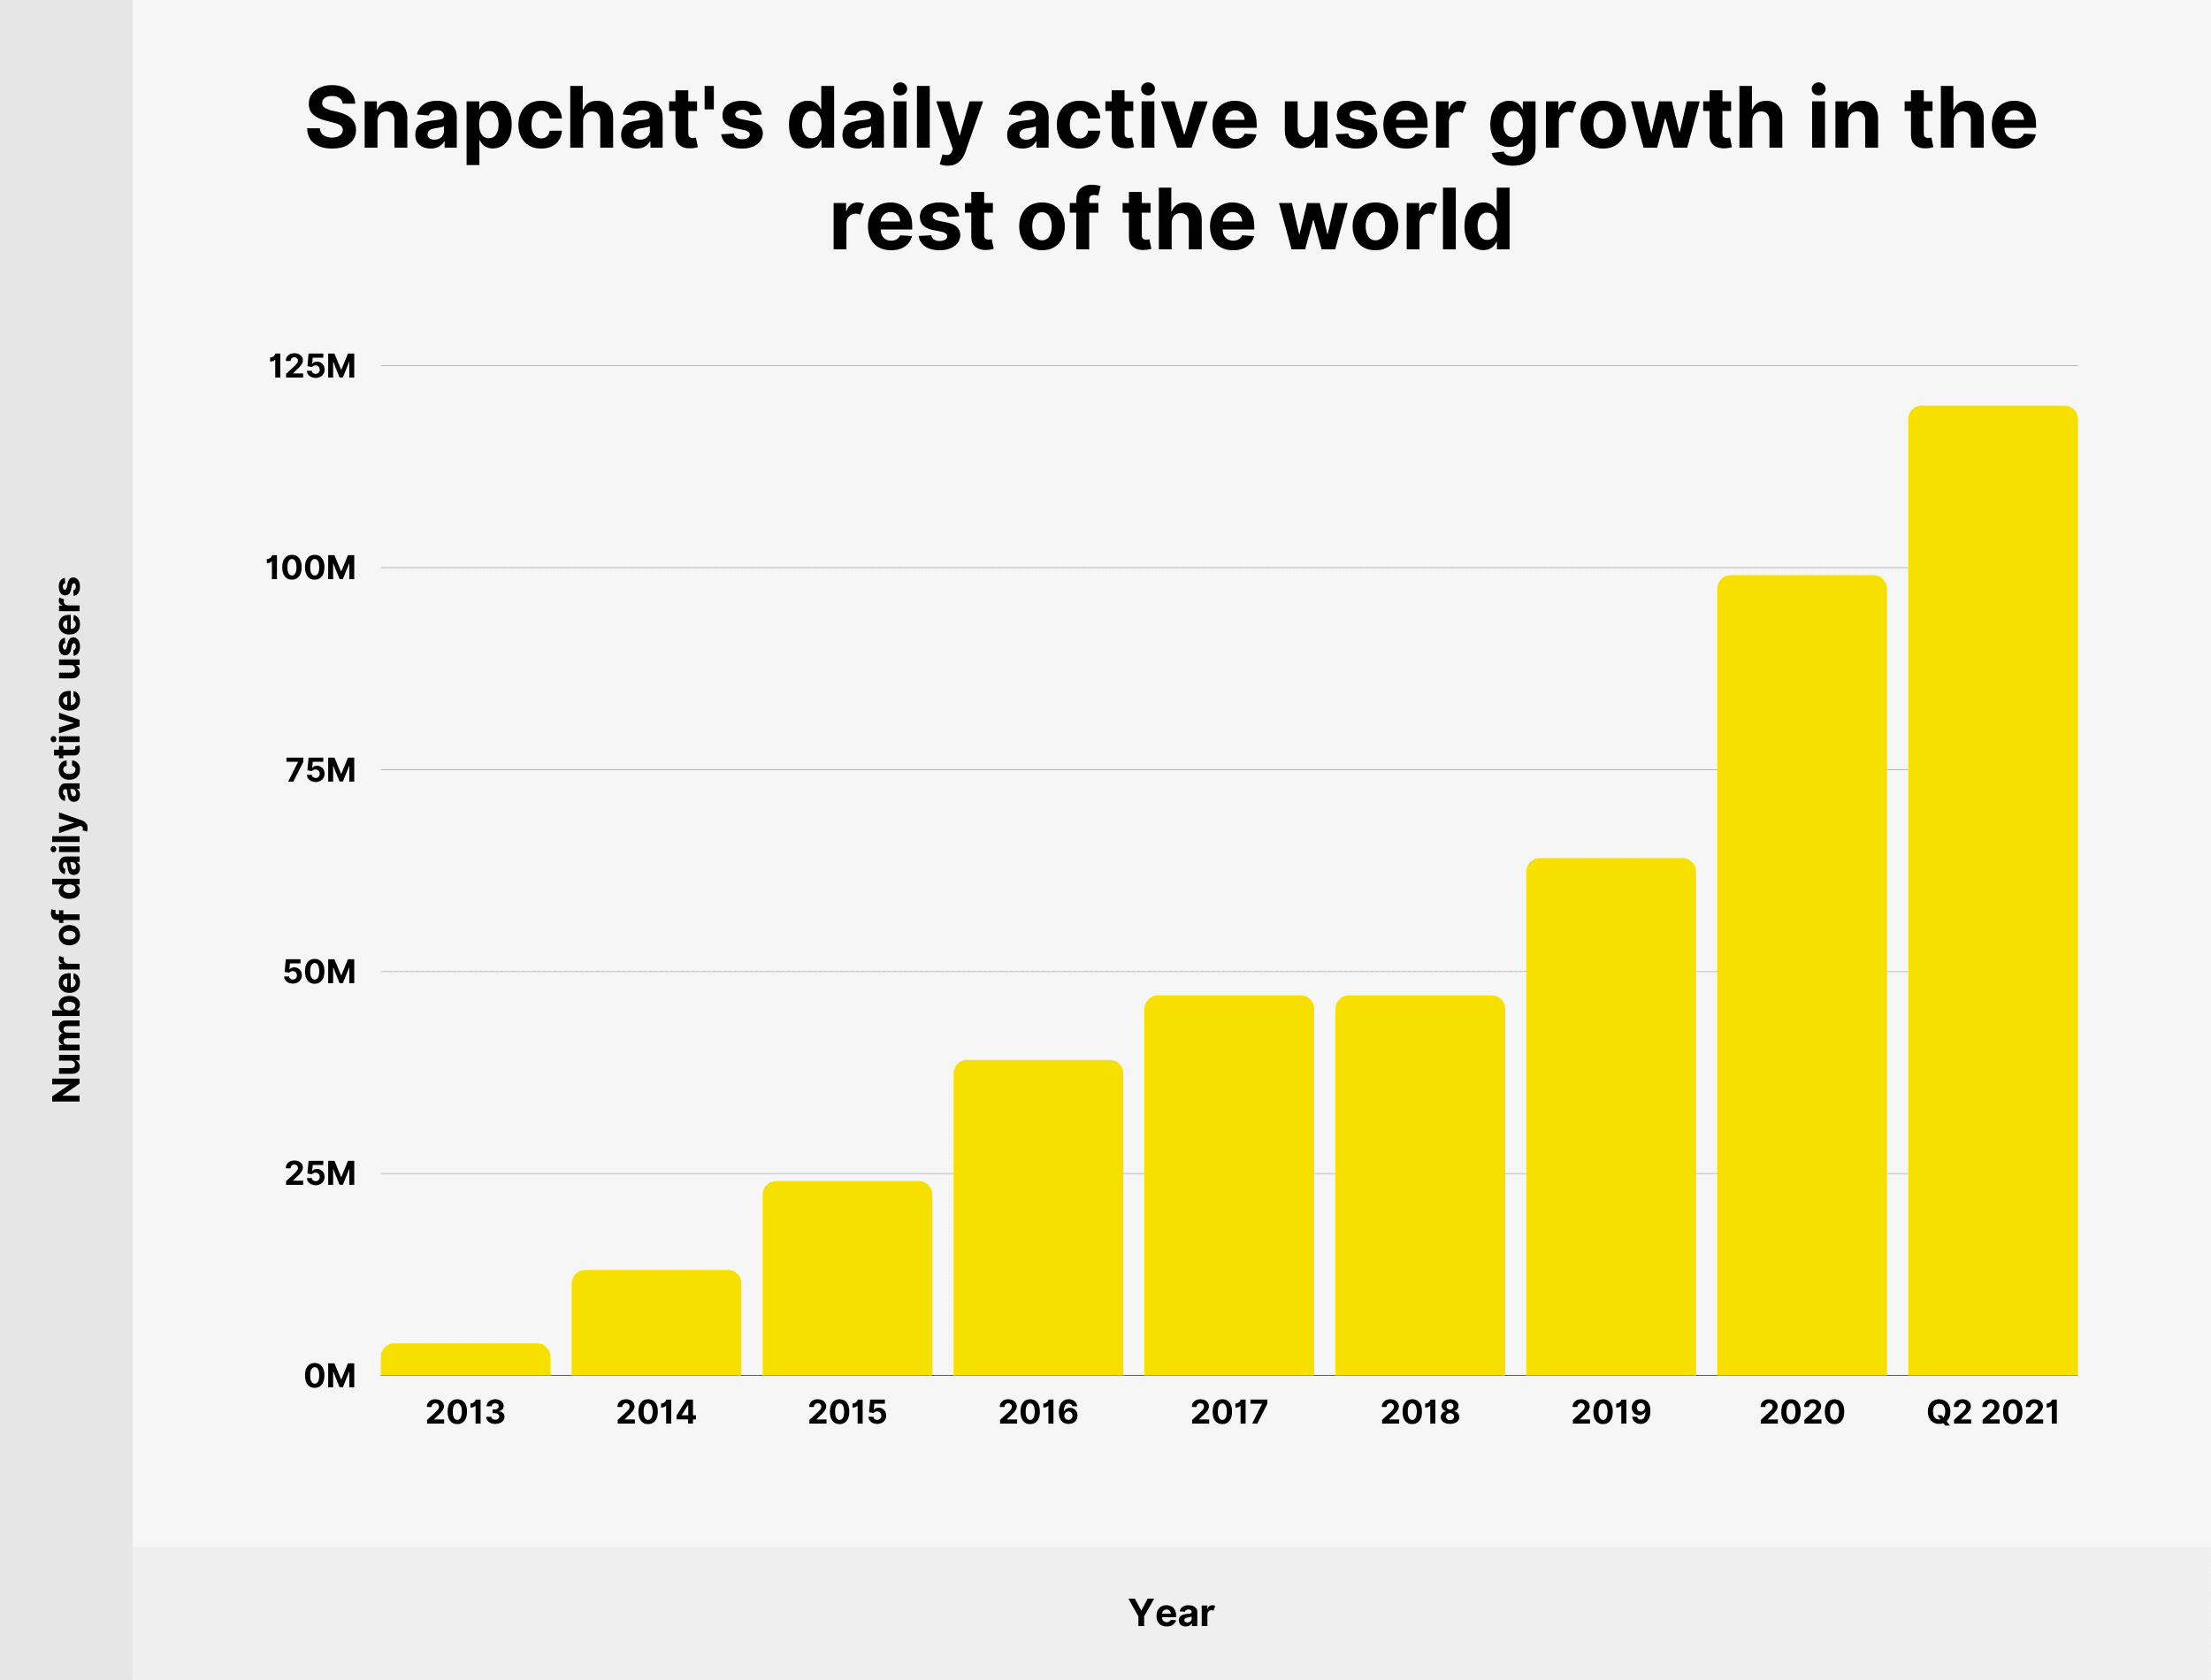 Snapchat's daily active user growth in the rest of the world